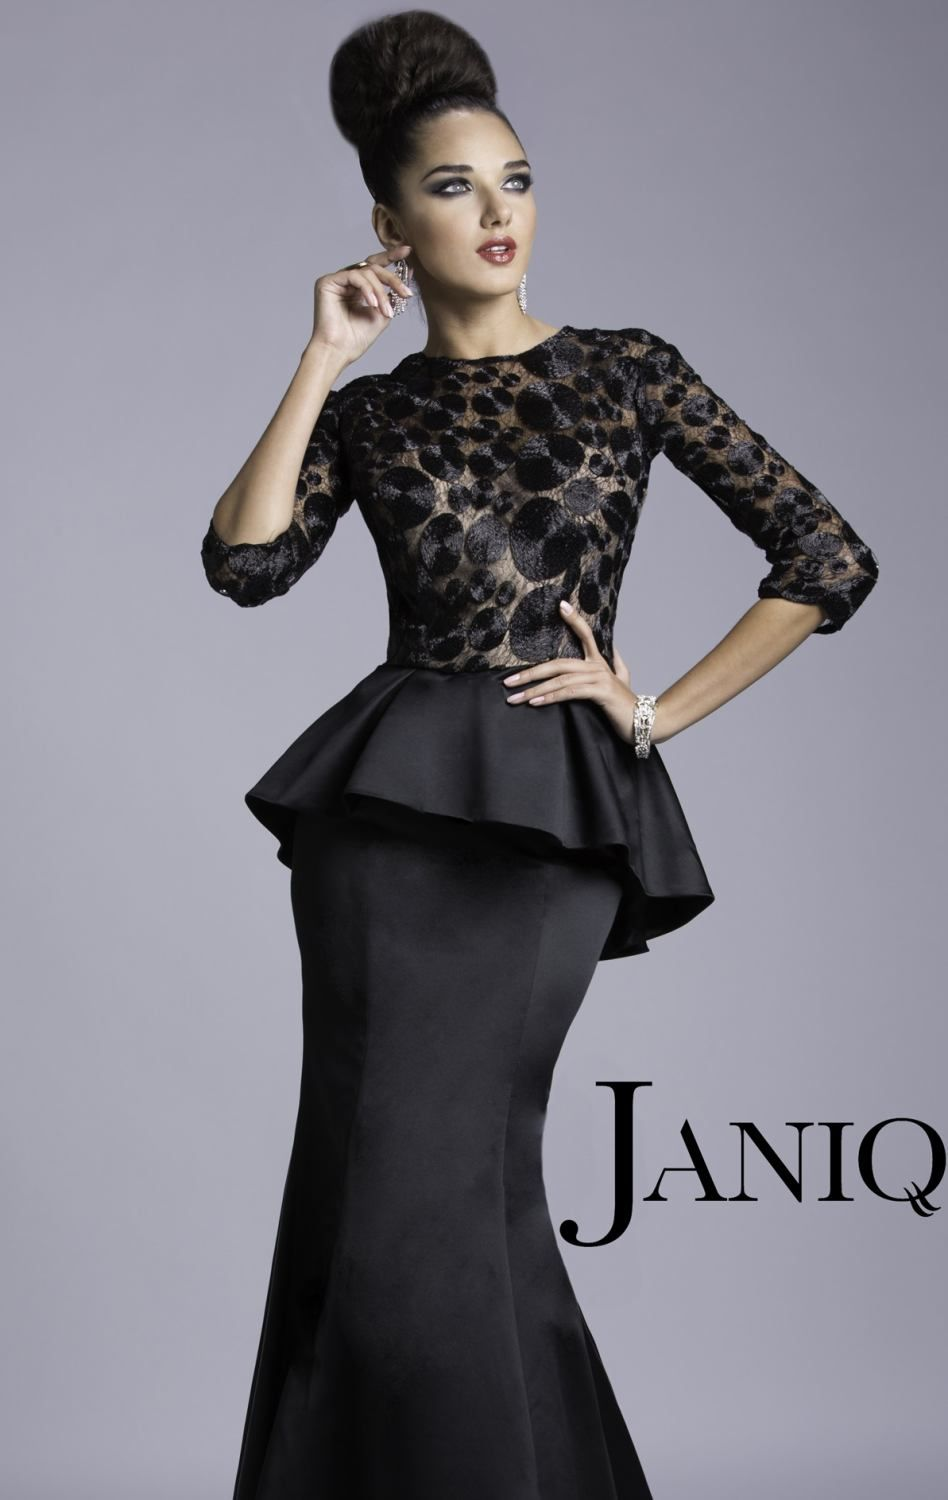 Peplum evening gown by janique red carpet pinterest gowns